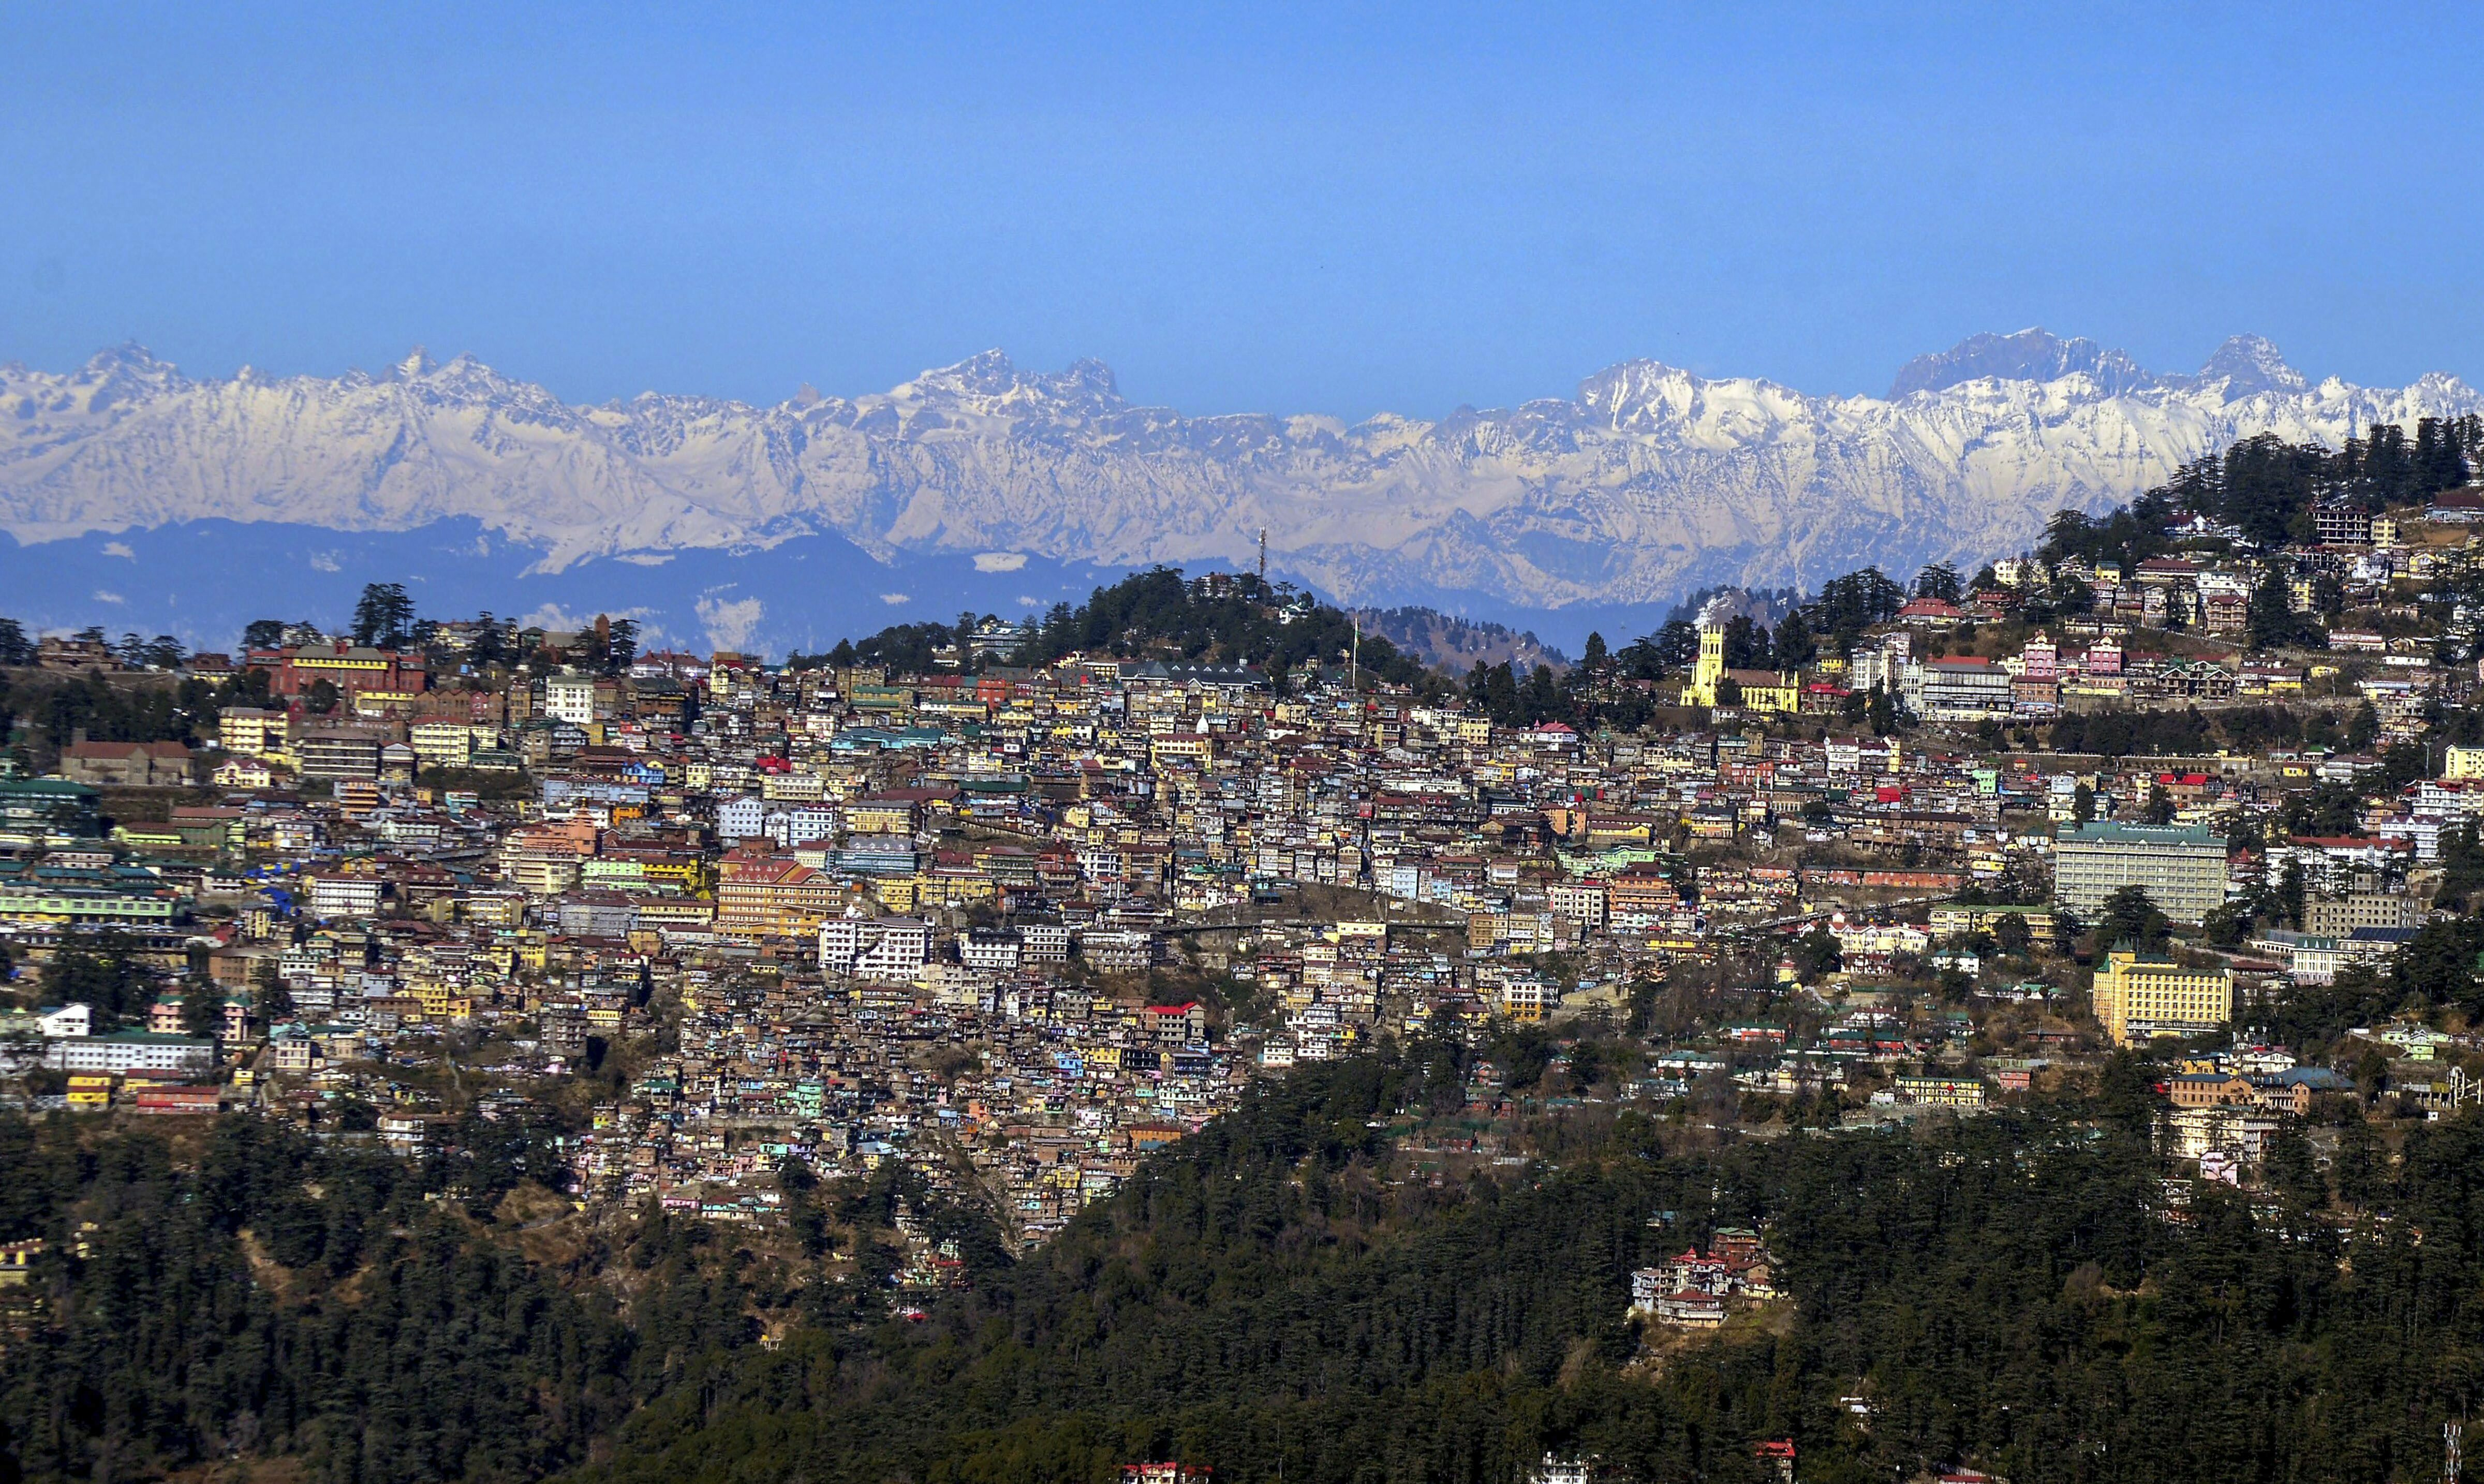 A view of the hill city of Shimla seen in the backdrop of snow covered mountains - PTI